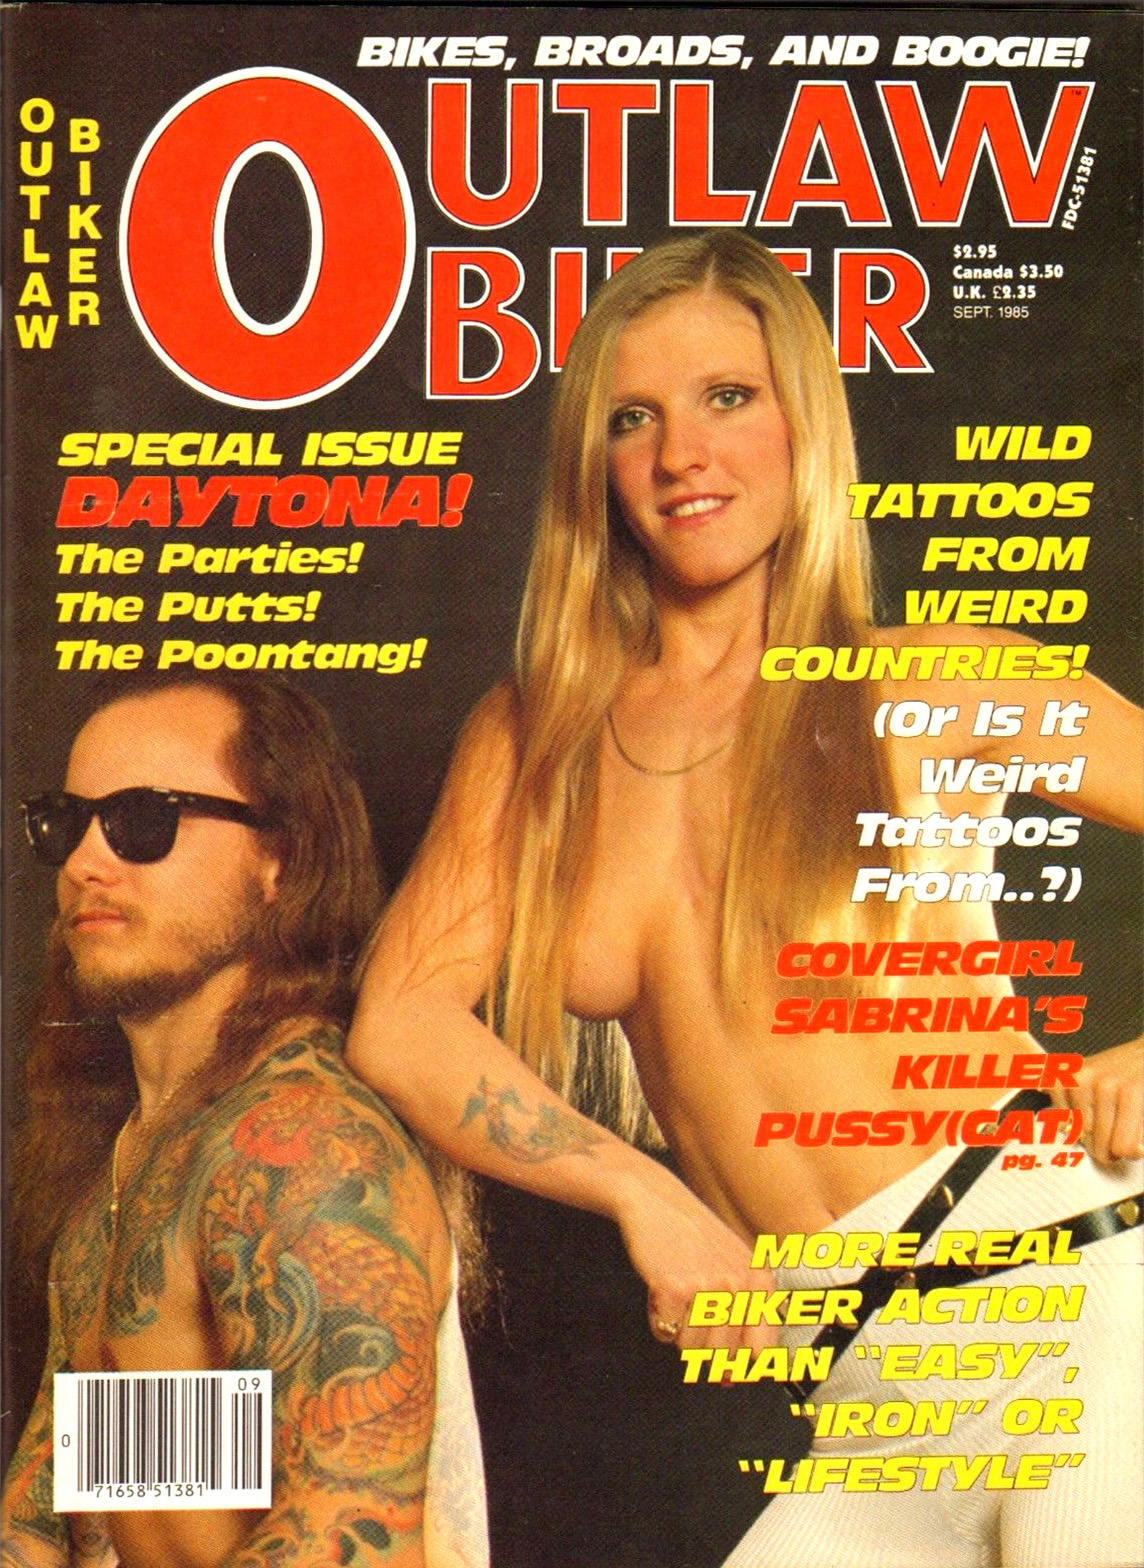 Bikes Broads Beer and Boogie 45 Biker Magazines from